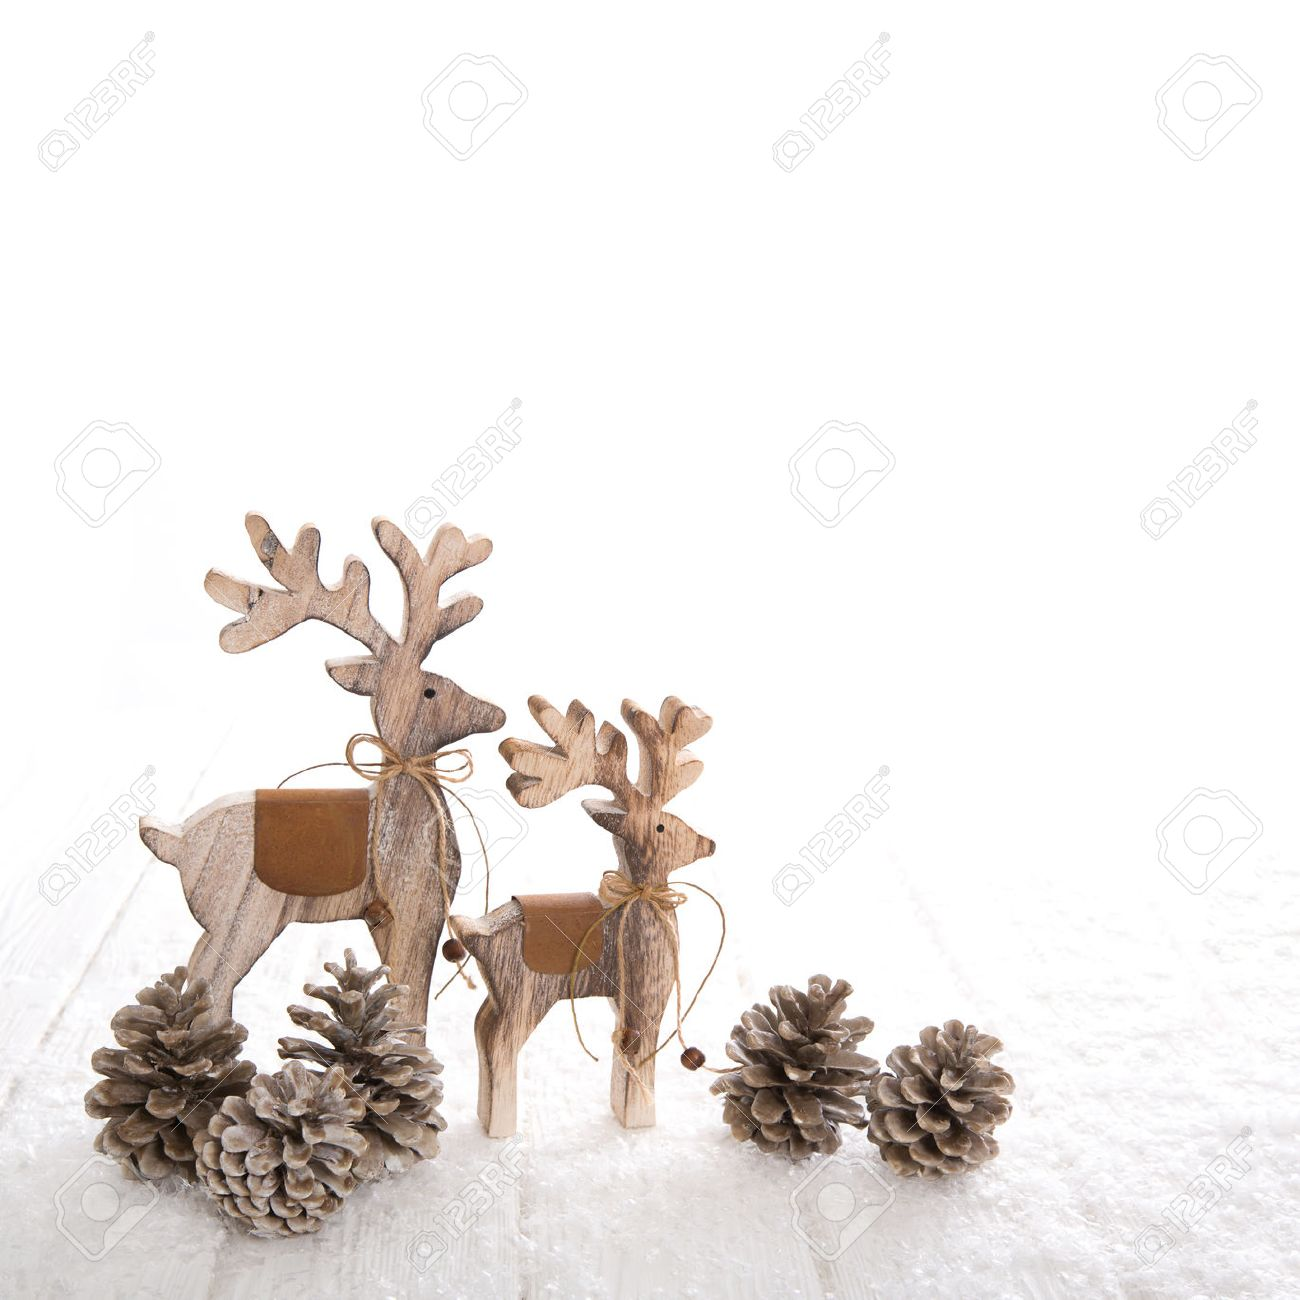 Couple of thw wooden deer with fir cone on white wooden background. Banque d'images - 47341496